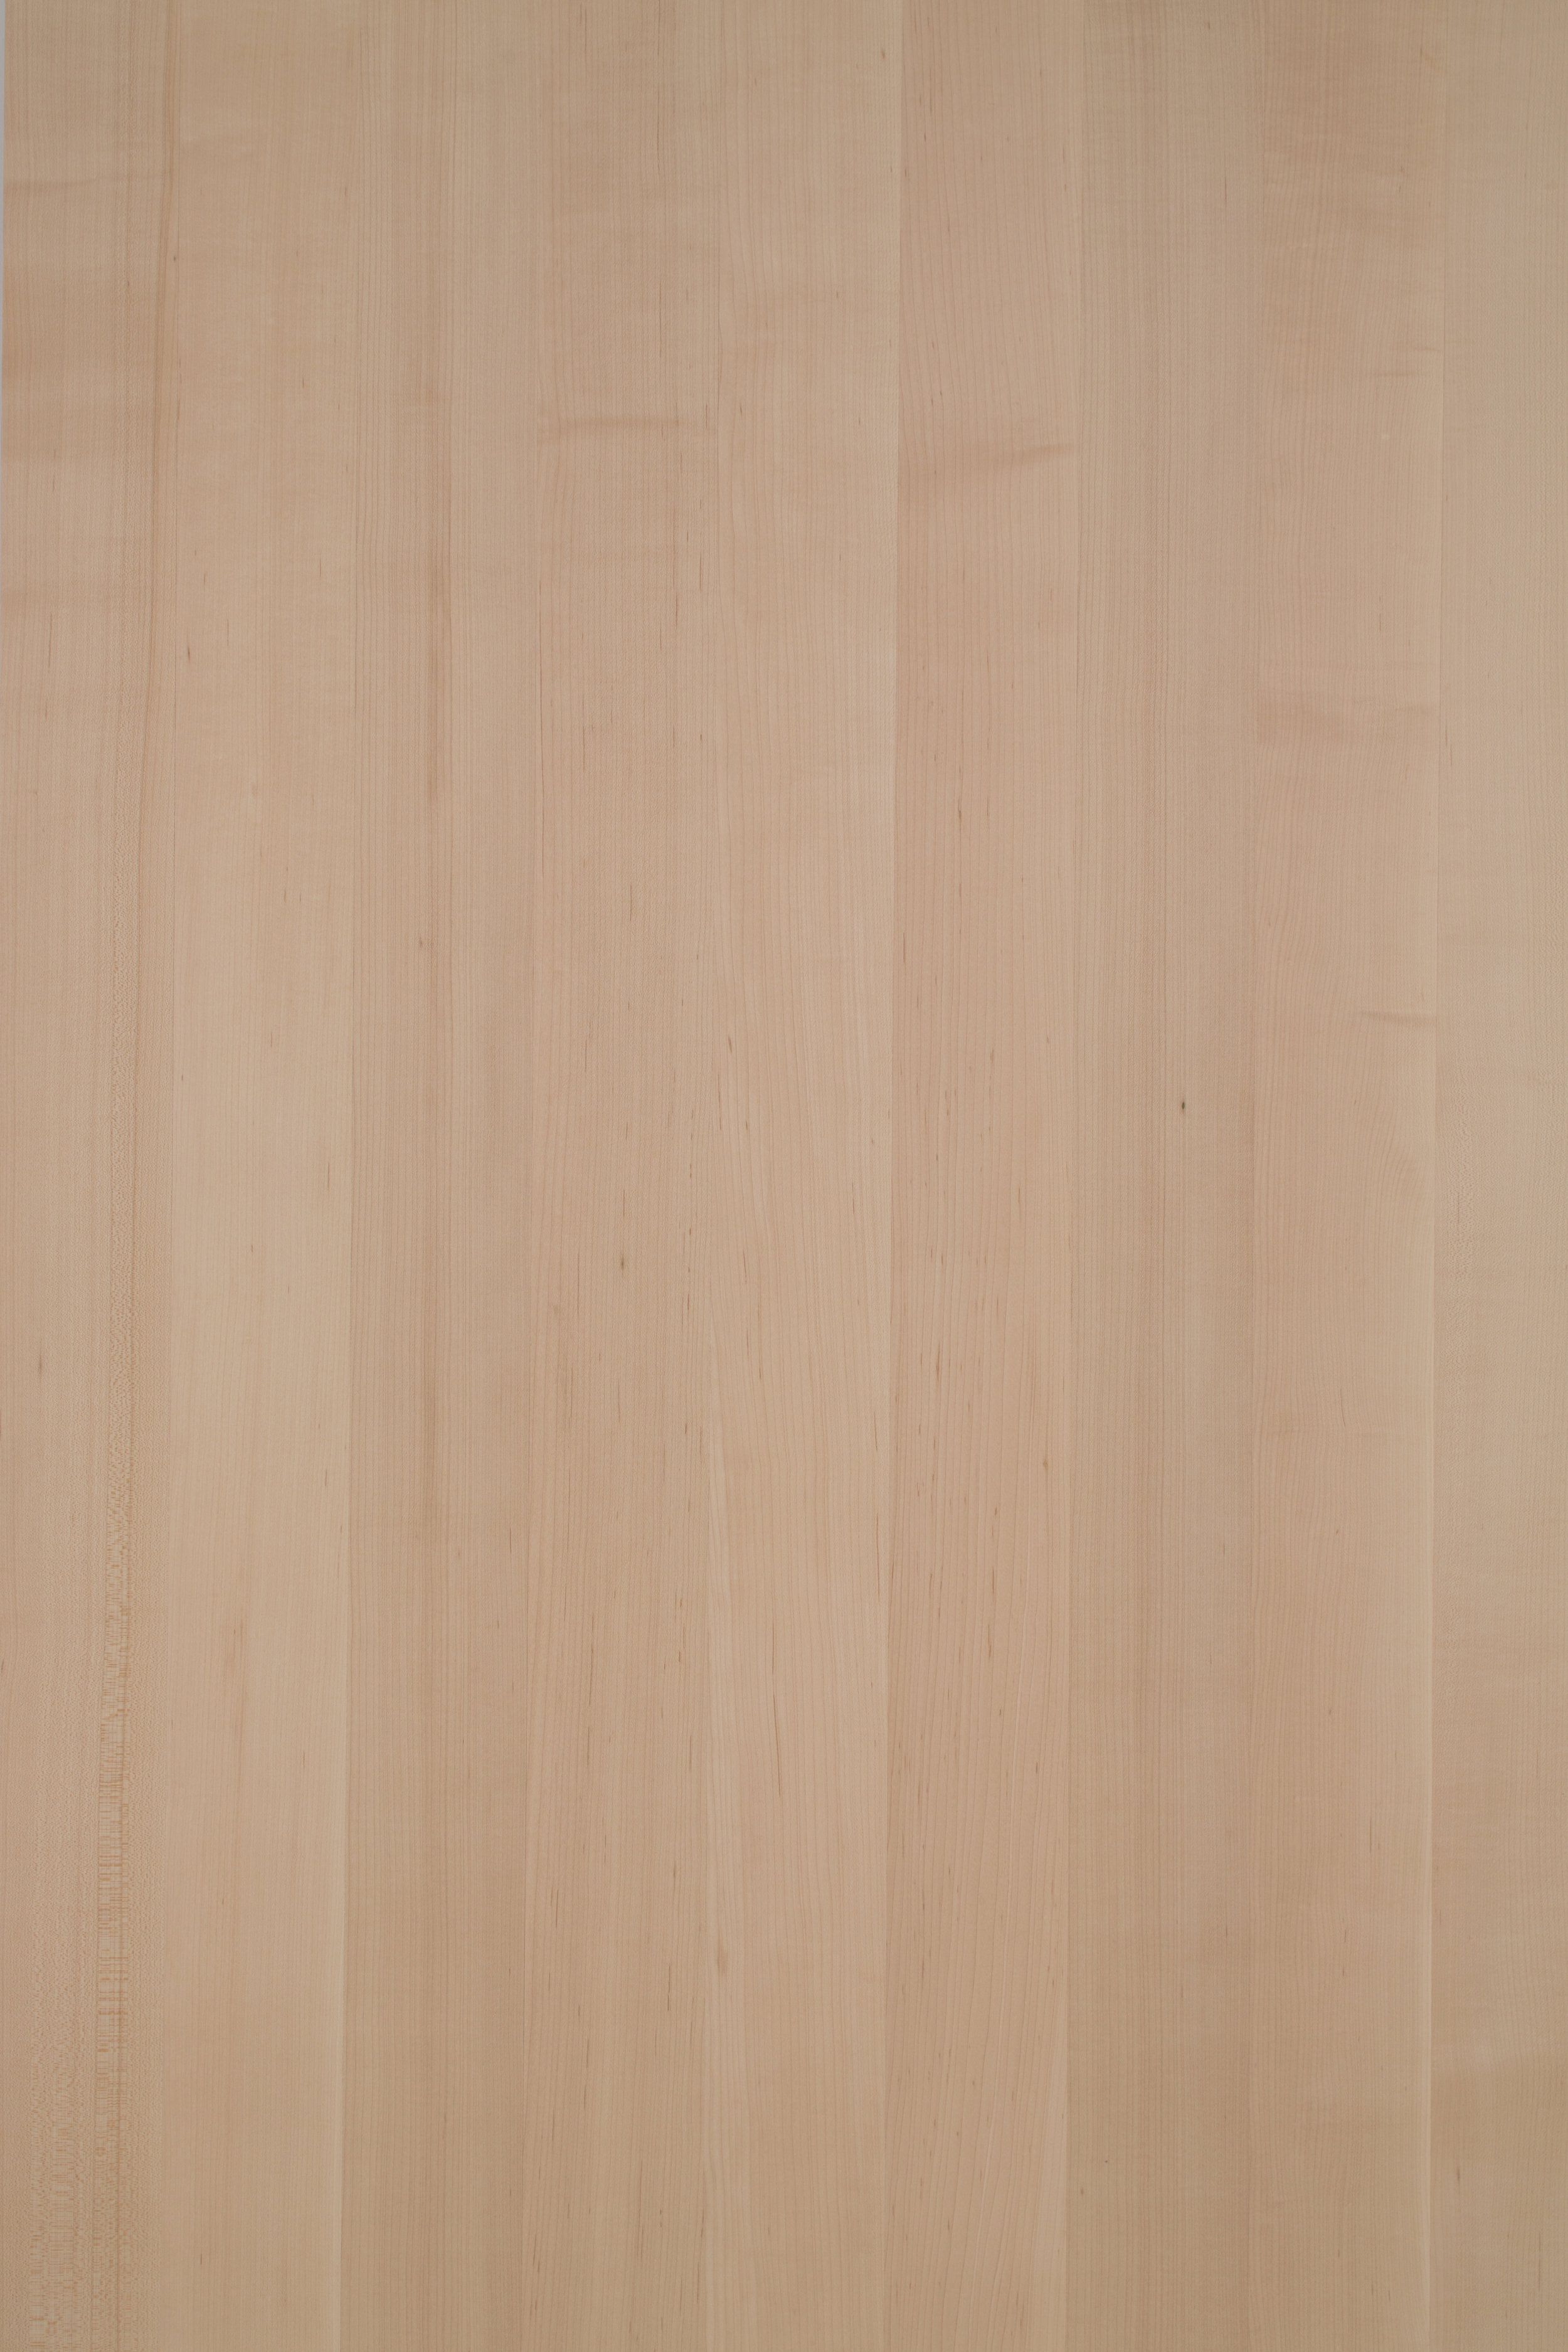 Premium Quarter Sawn Maple